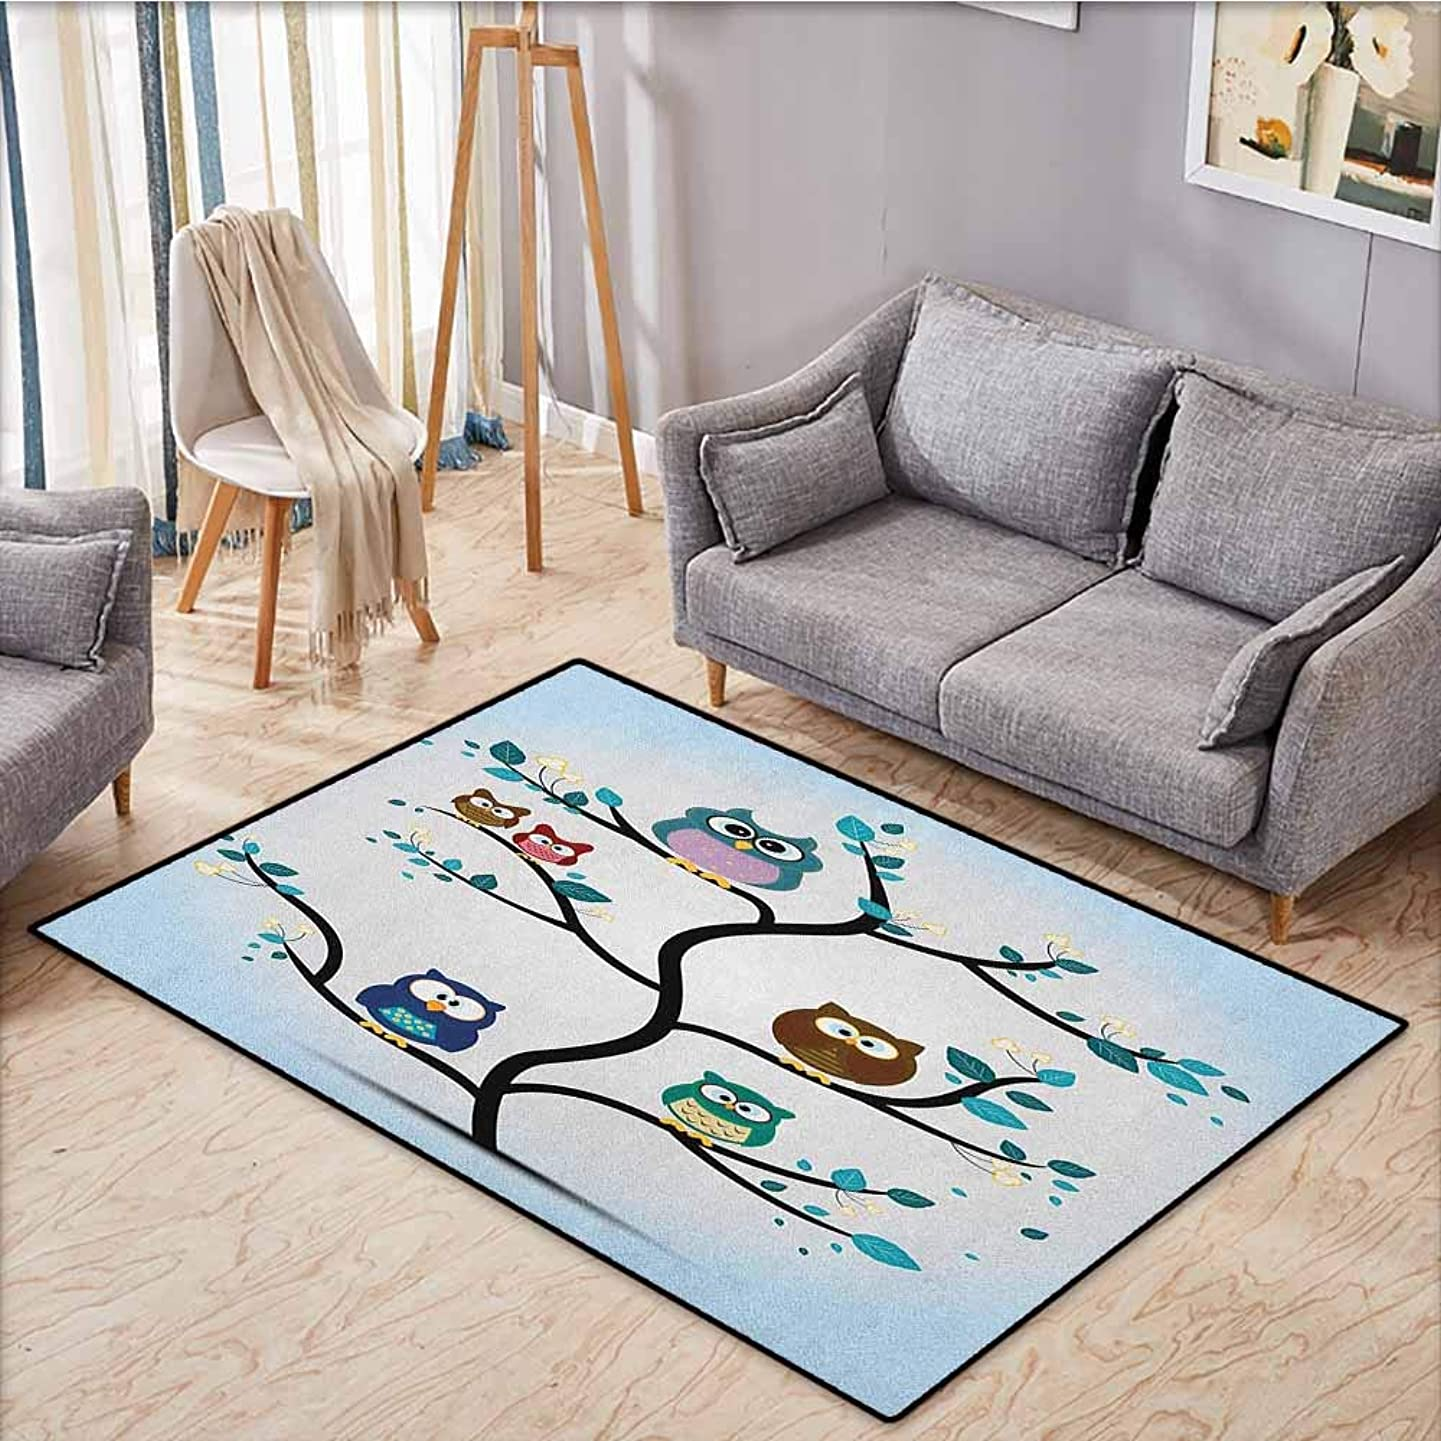 Living Room Rug,Owl,Owl Family Perched on a Tree Love Grace Nocturnal Eyed Night Animals in The Nature Print,Anti-Static, Water-Repellent Rugs,4'7